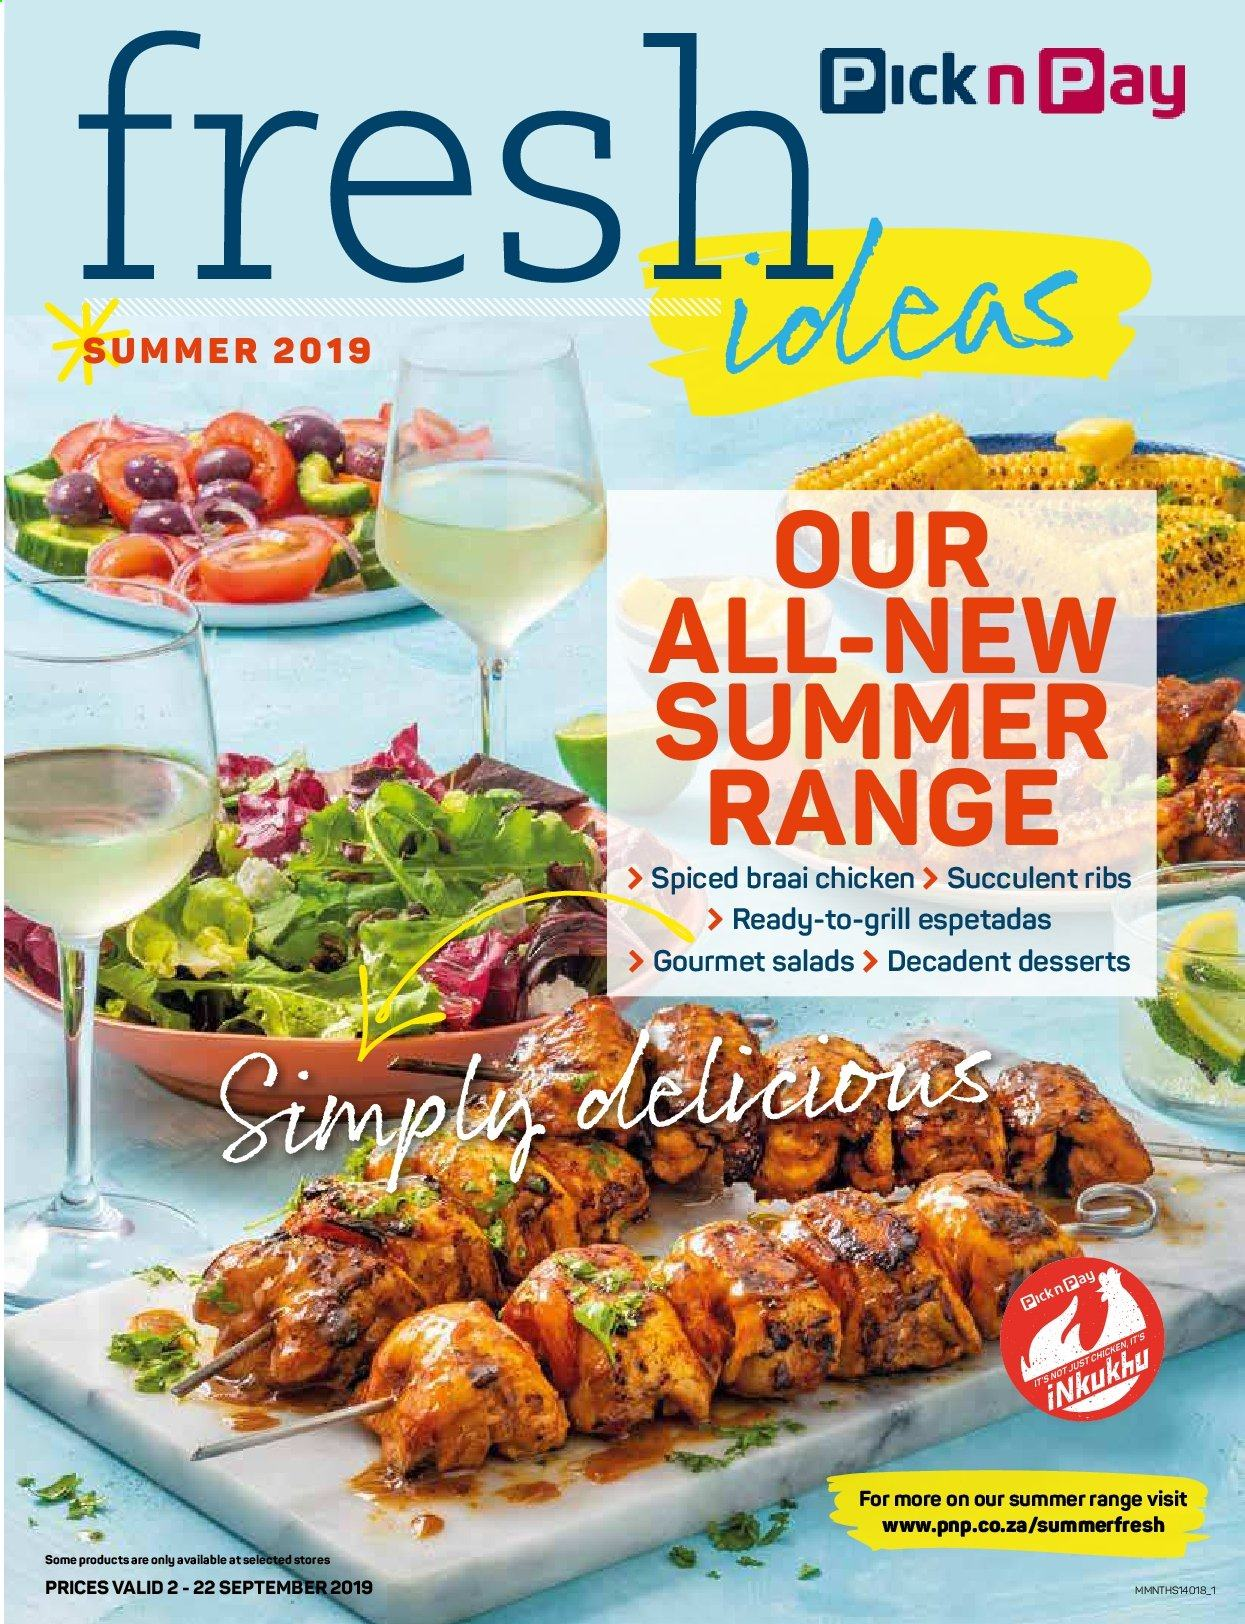 Pick n Pay special - 09.02.2019 - 09.22.2019 - Sales products - blueberries, cream, grill, strawberries, vegan, whipped cream, ice cream, chicken, chocolate, cheesecake, berry, ribs, fruit. Page 1.